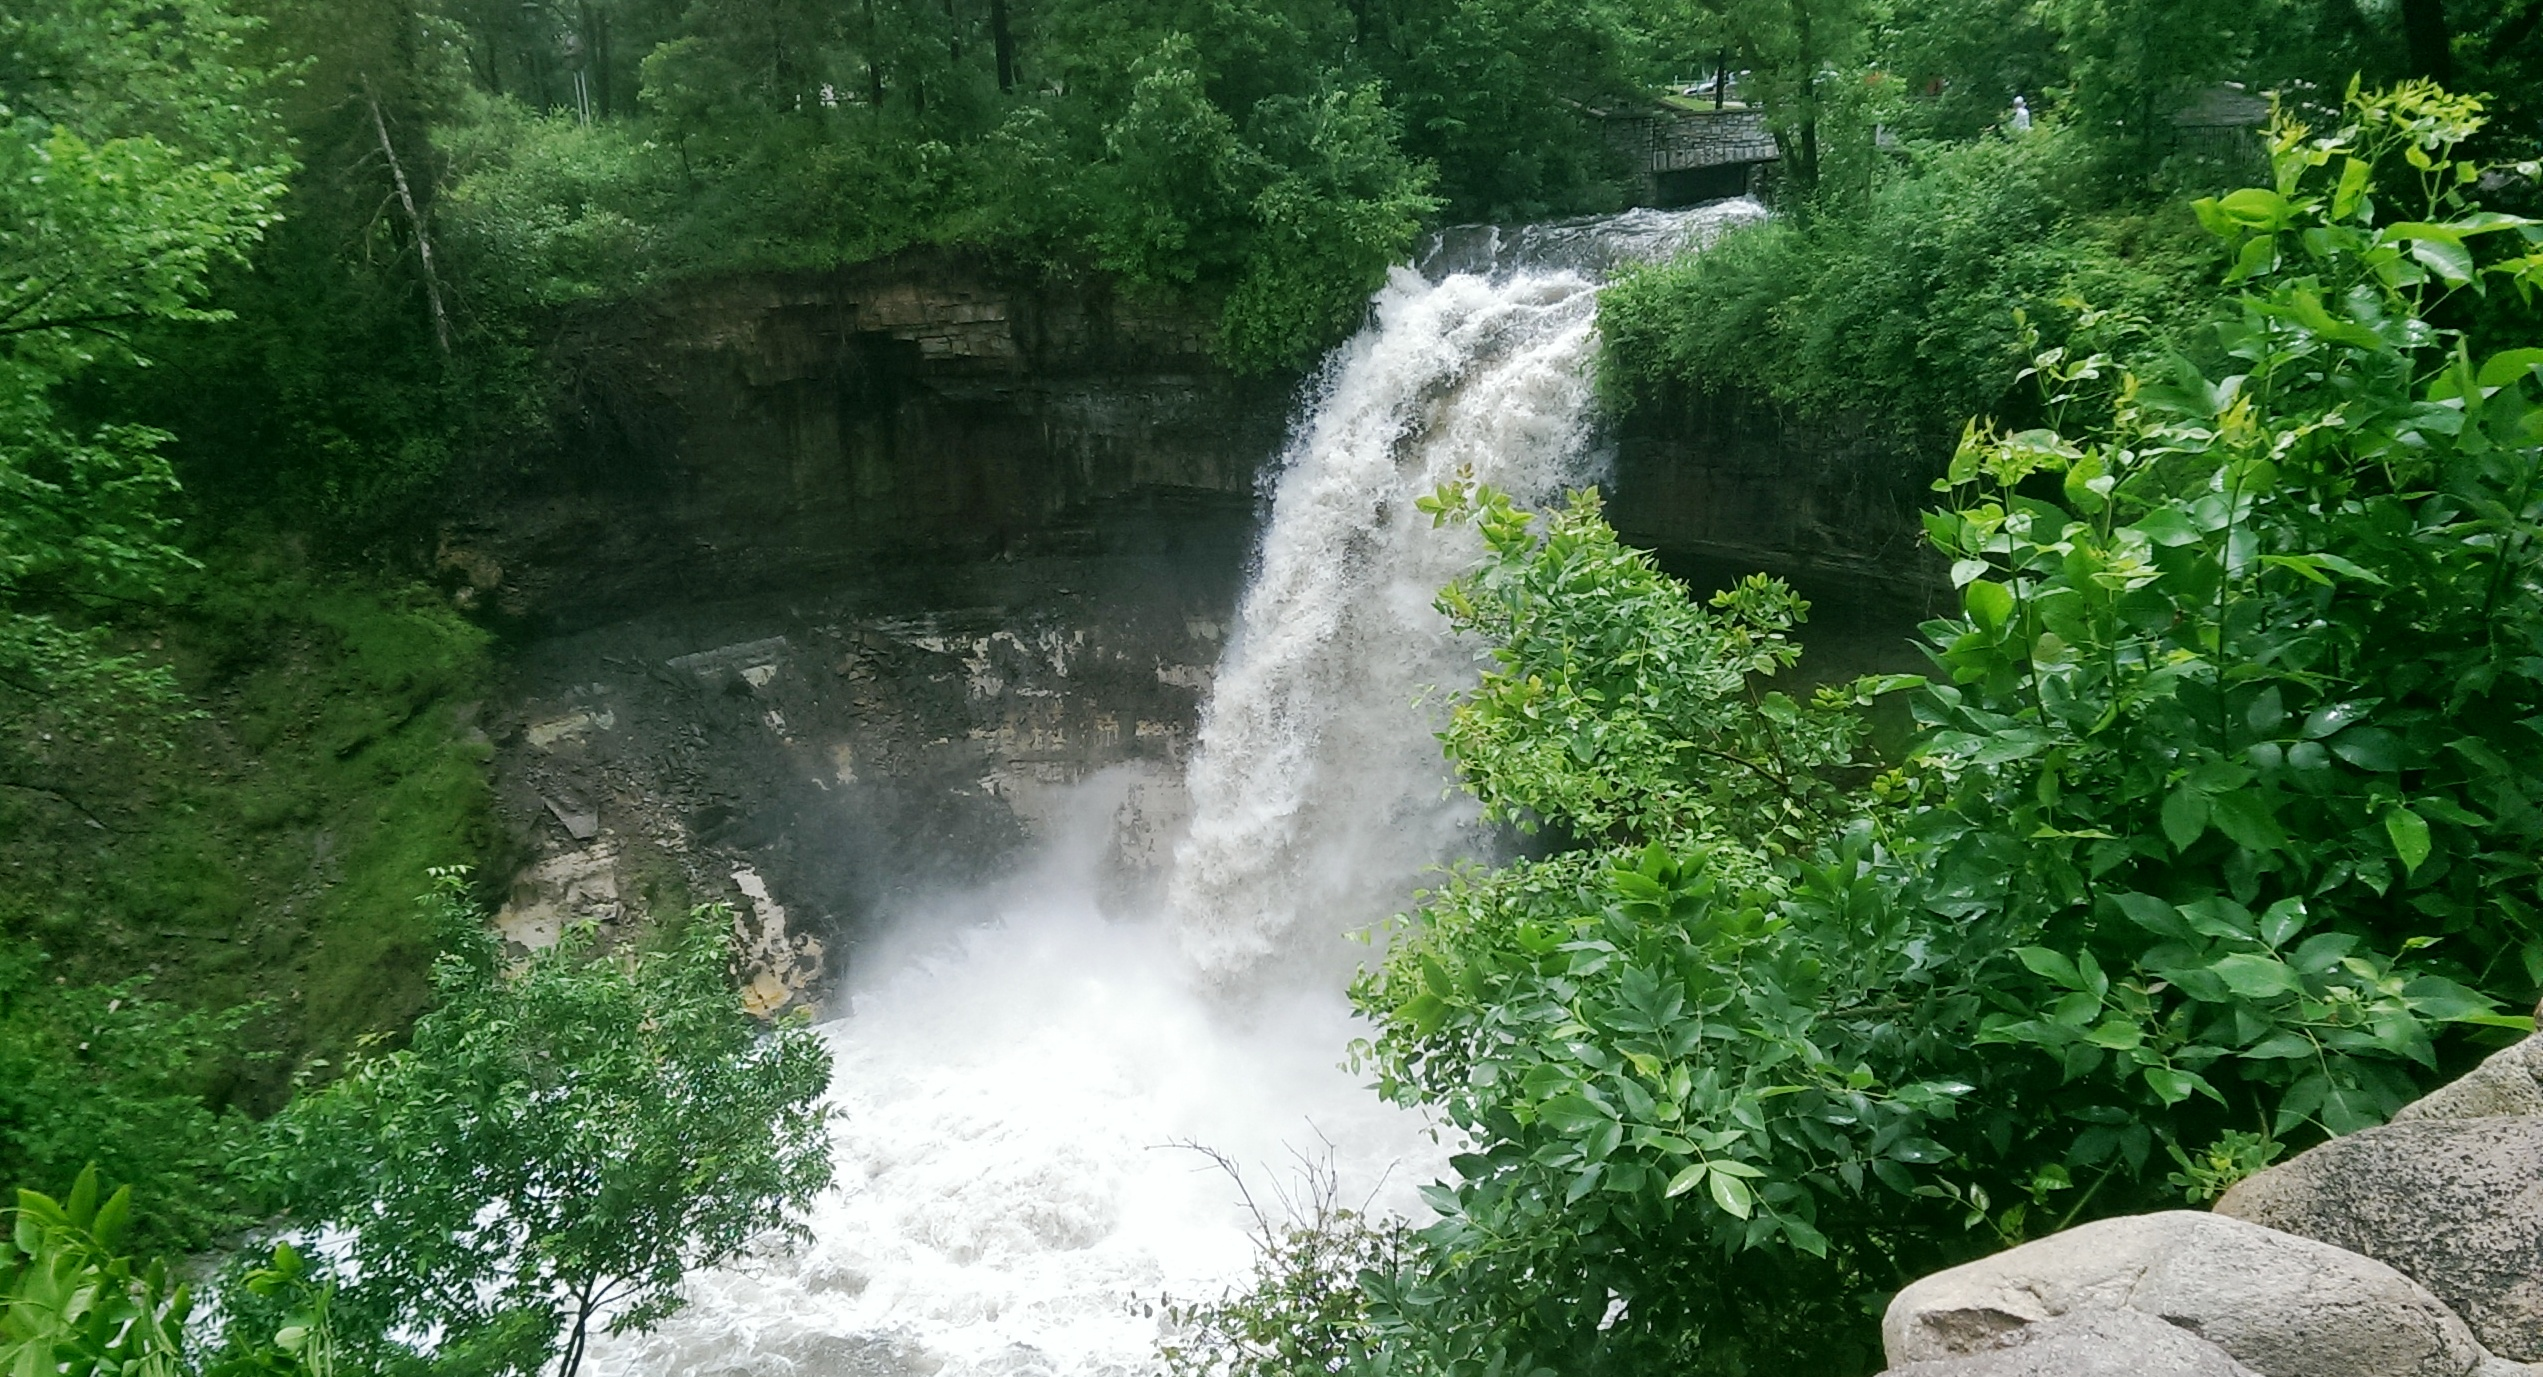 The falls made famous by Henry Wadswotrth Longfellow. I recently discovered  startling early plans for